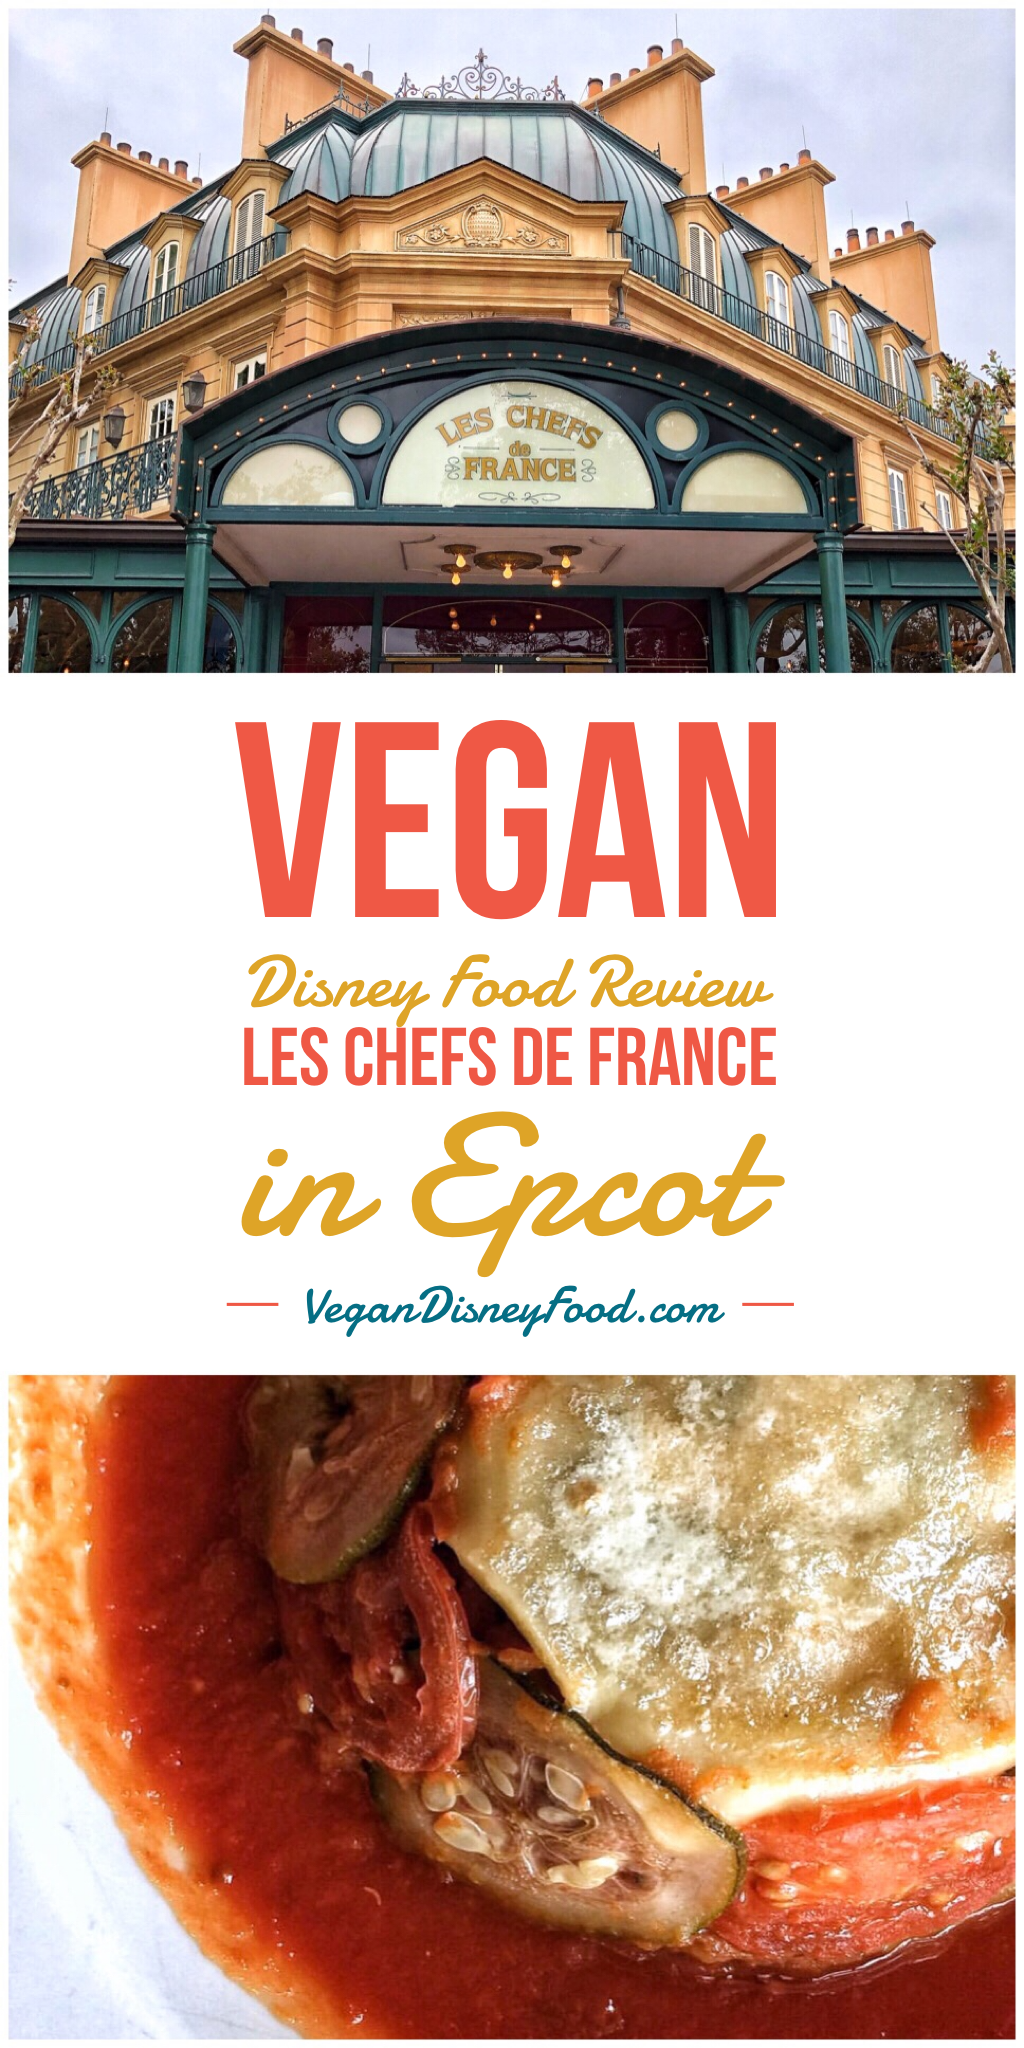 Vegan Disney Food Review: Lunch at Les Chefs de France in Epcot